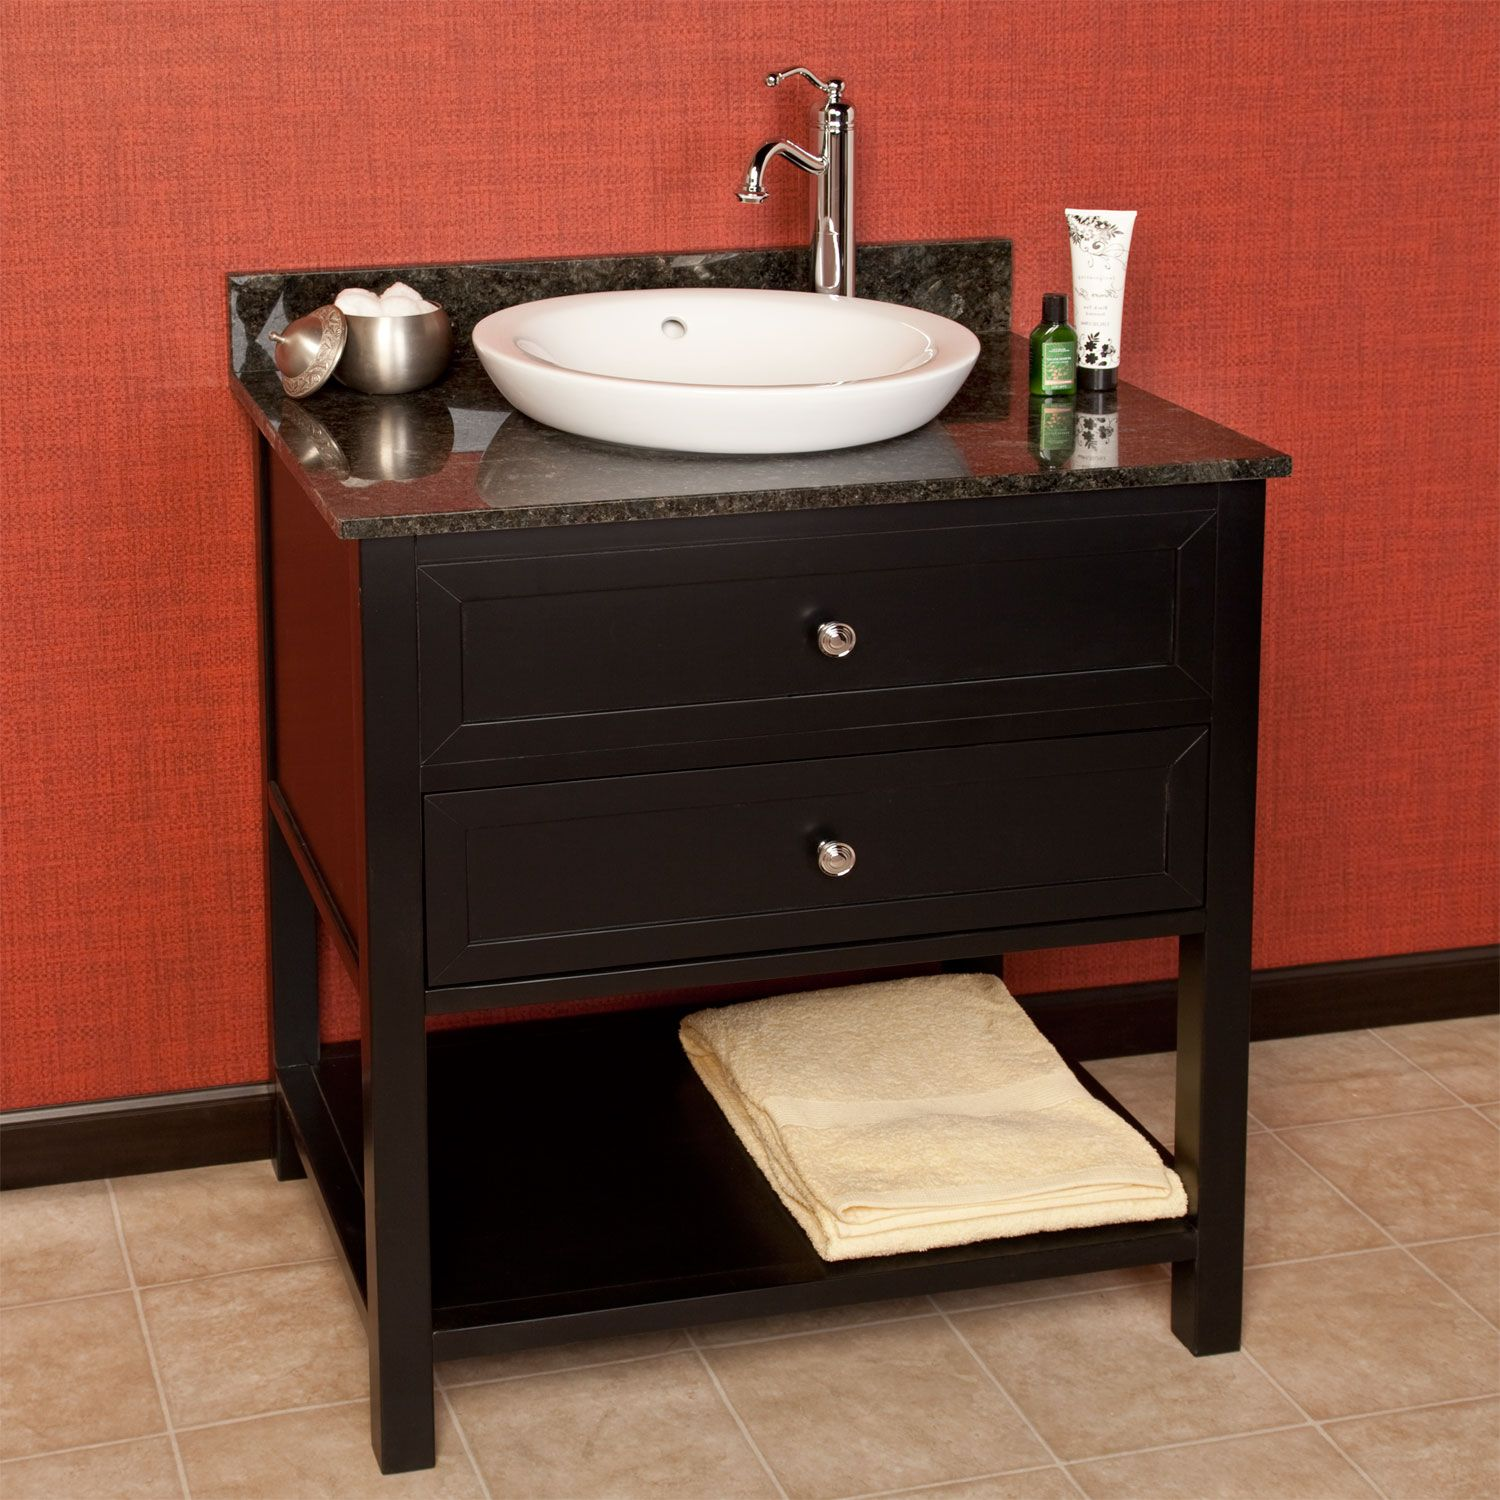 30 Black Taren Vanity Semi Recessed Basin Right Offset Faucet 3 4 Marble Top Polished Carrara 29 7 8 W X 20 D 34 1 H Also In 36